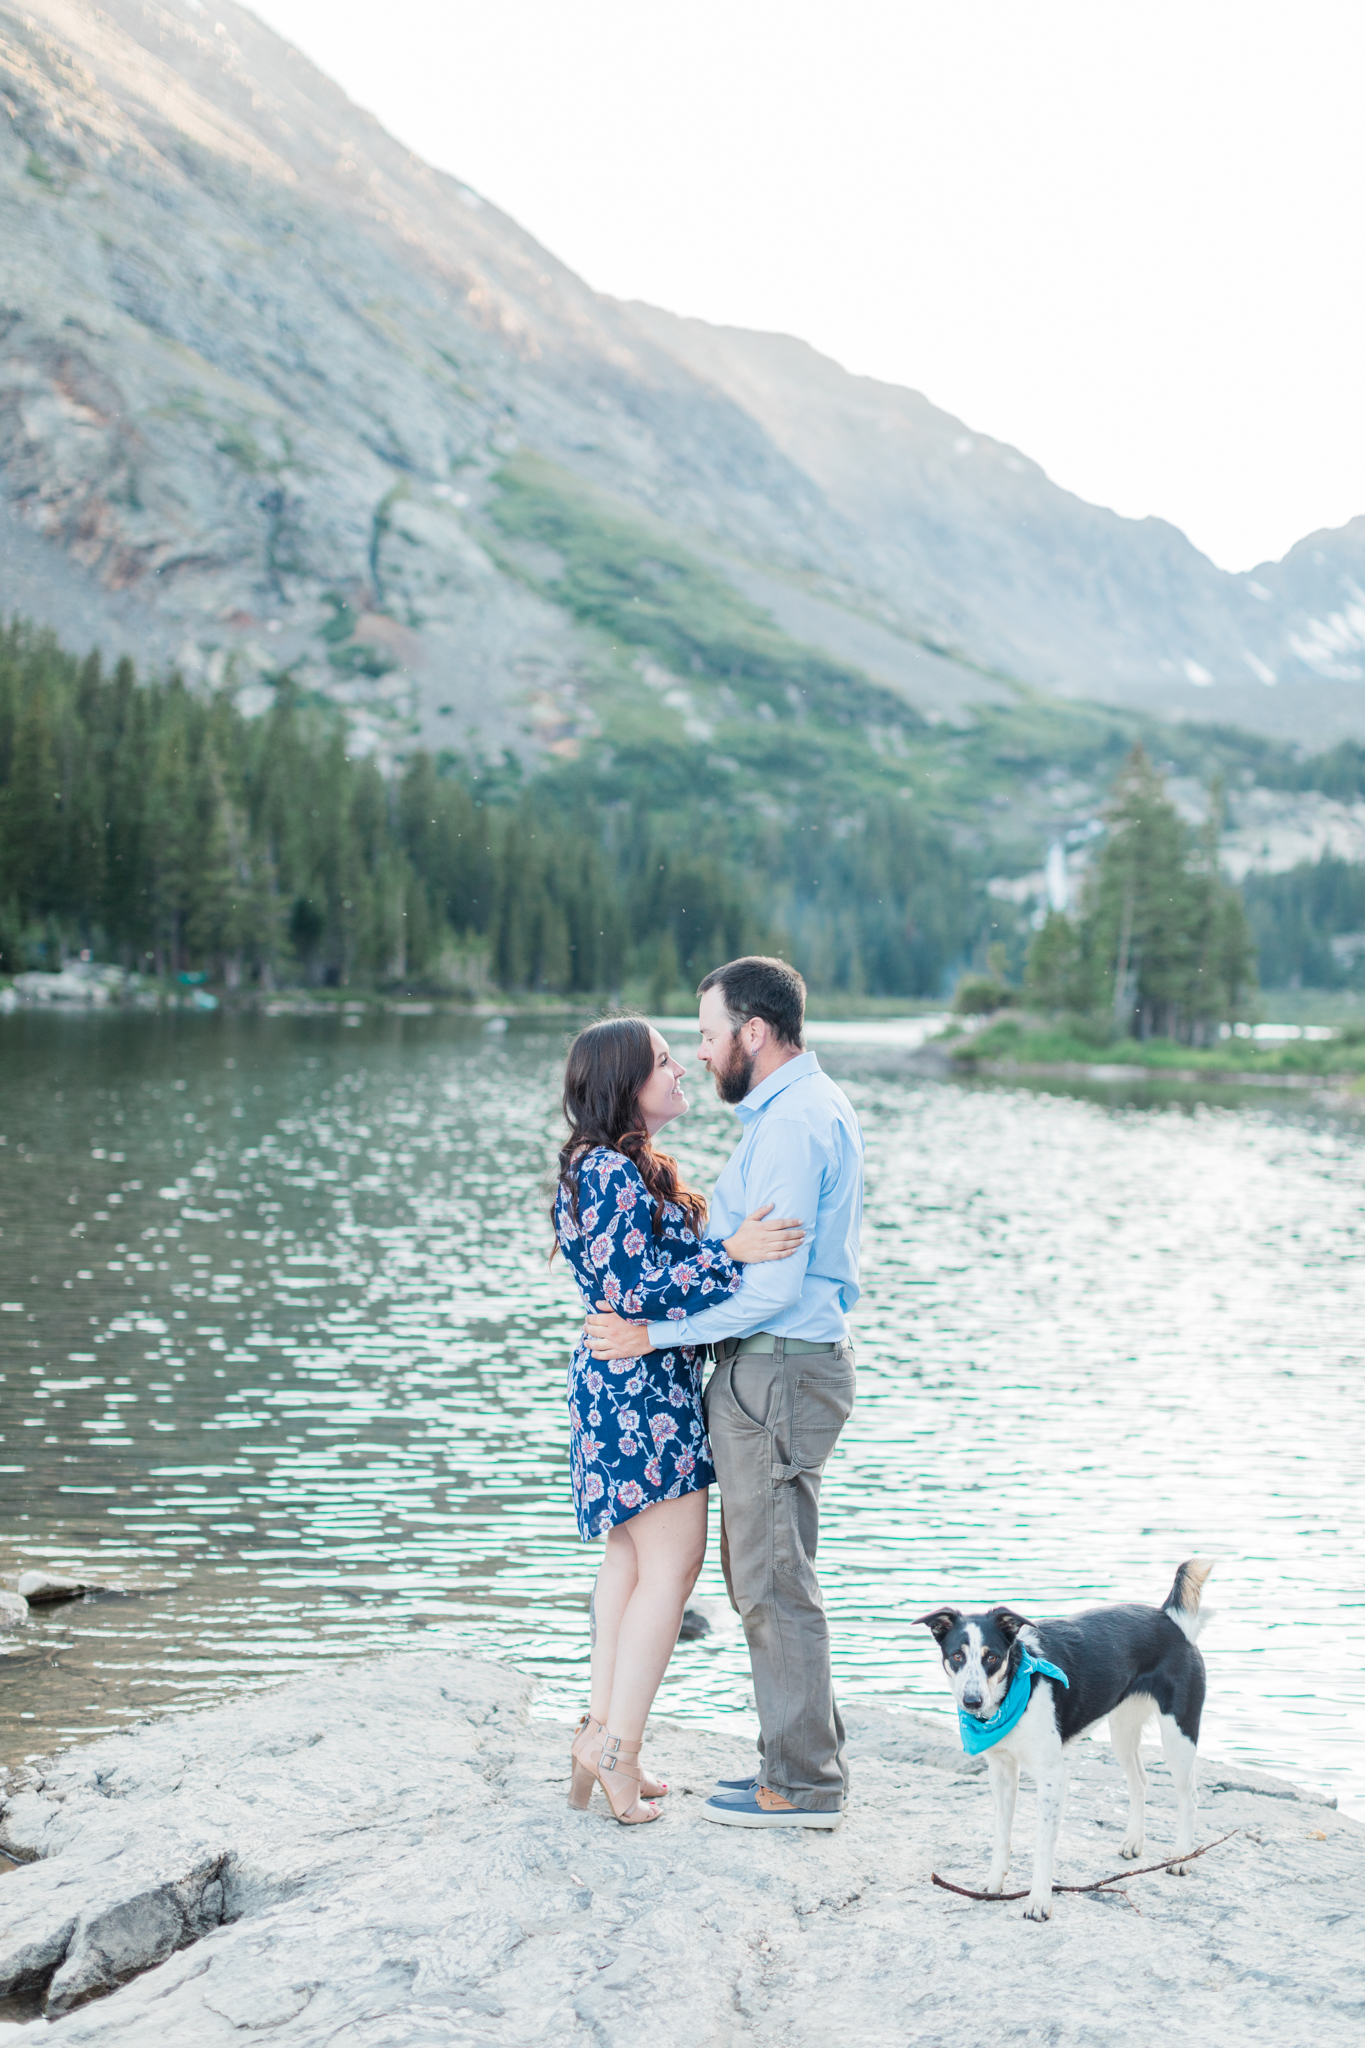 Ally_Joe_Breckenridge_Engagement_Session_22